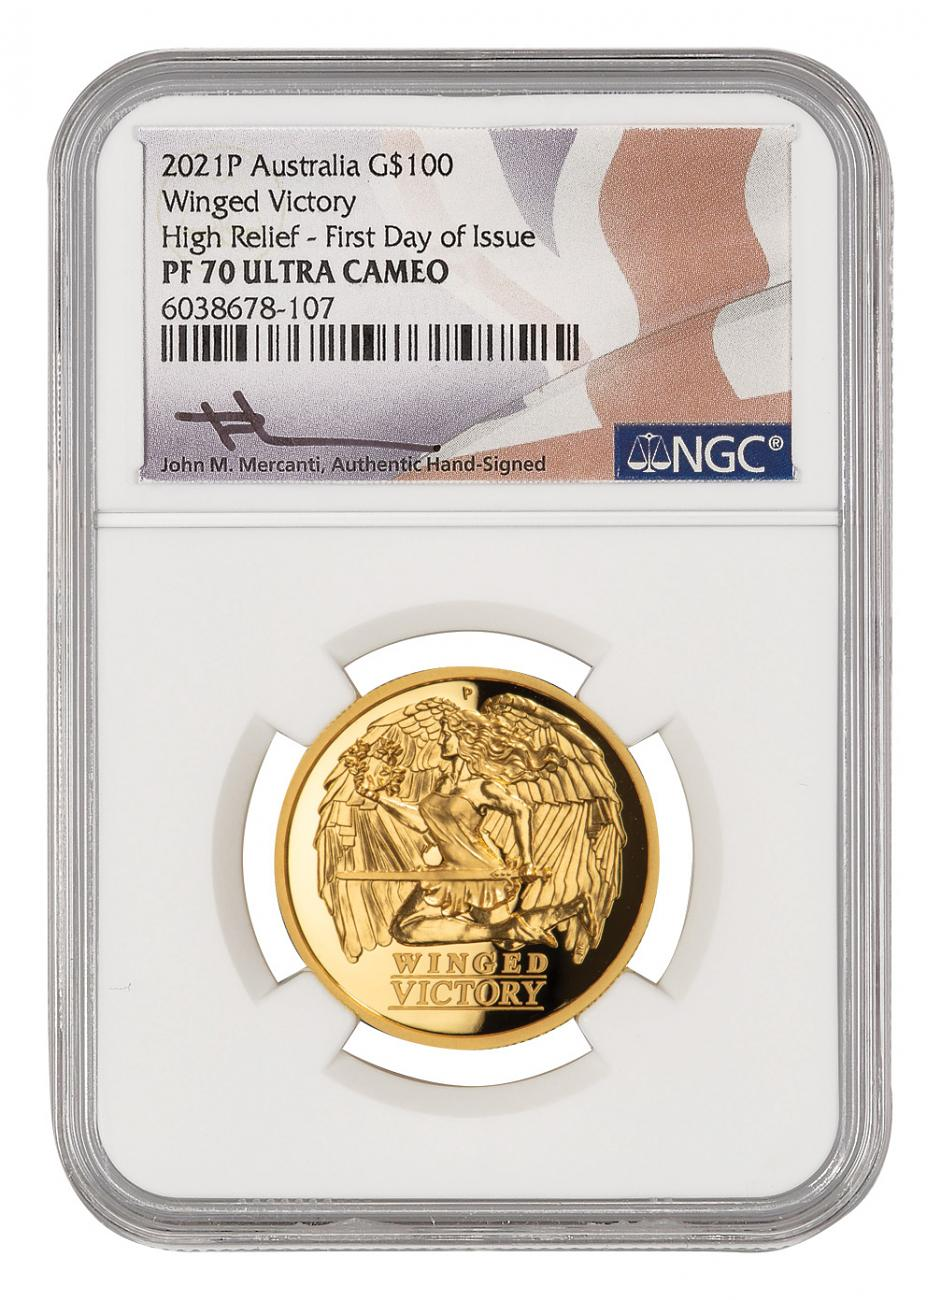 2021 Australia Winged Victory High Relief 1 oz Gold Proof $100 Coin Scarce and Unique Coin Division NGC PF70 UC FDI Mercanti Signed Flag Label